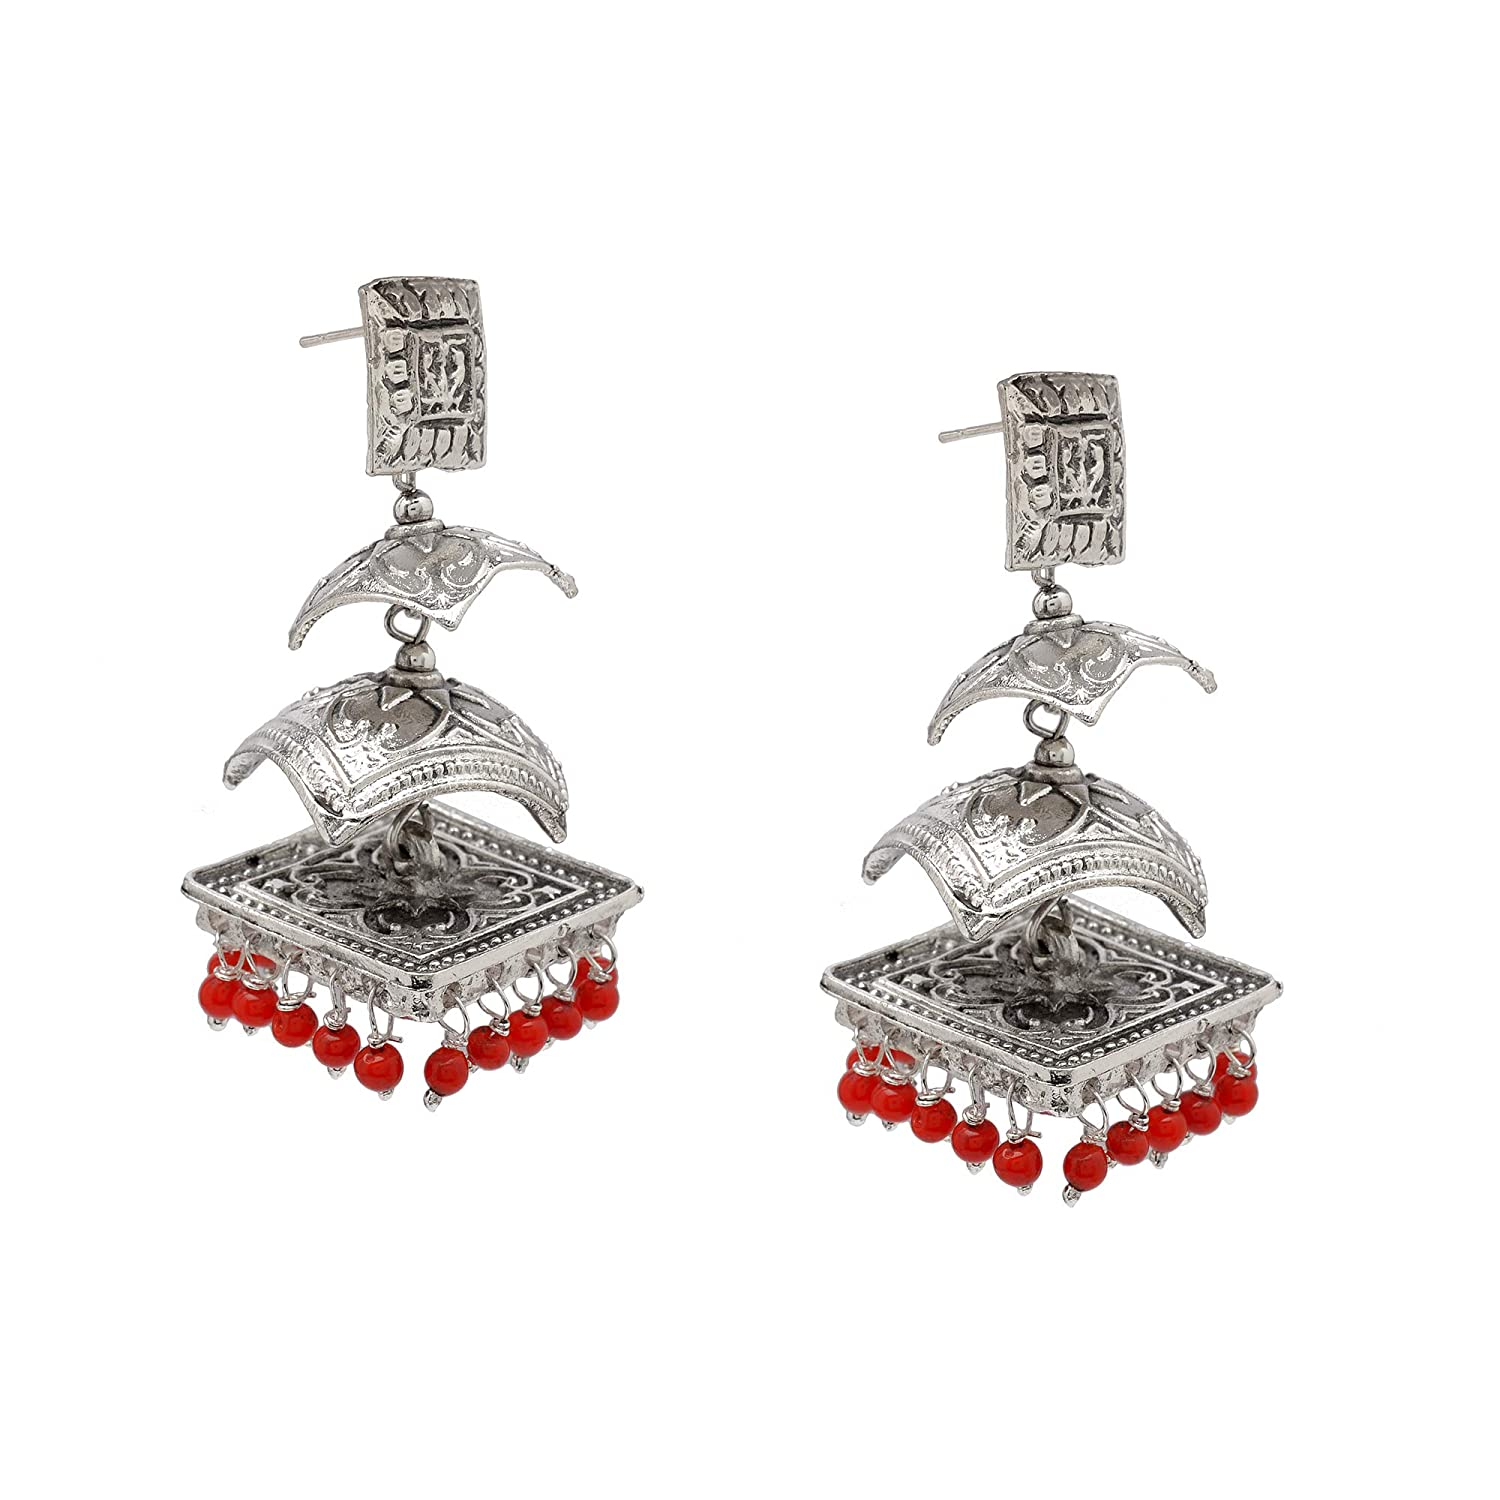 Zephyrr Afghani//Turkish Drop Earrings Silver Tone Casual Daily Wear Statement Jewelry For Women JAE-3431 Red